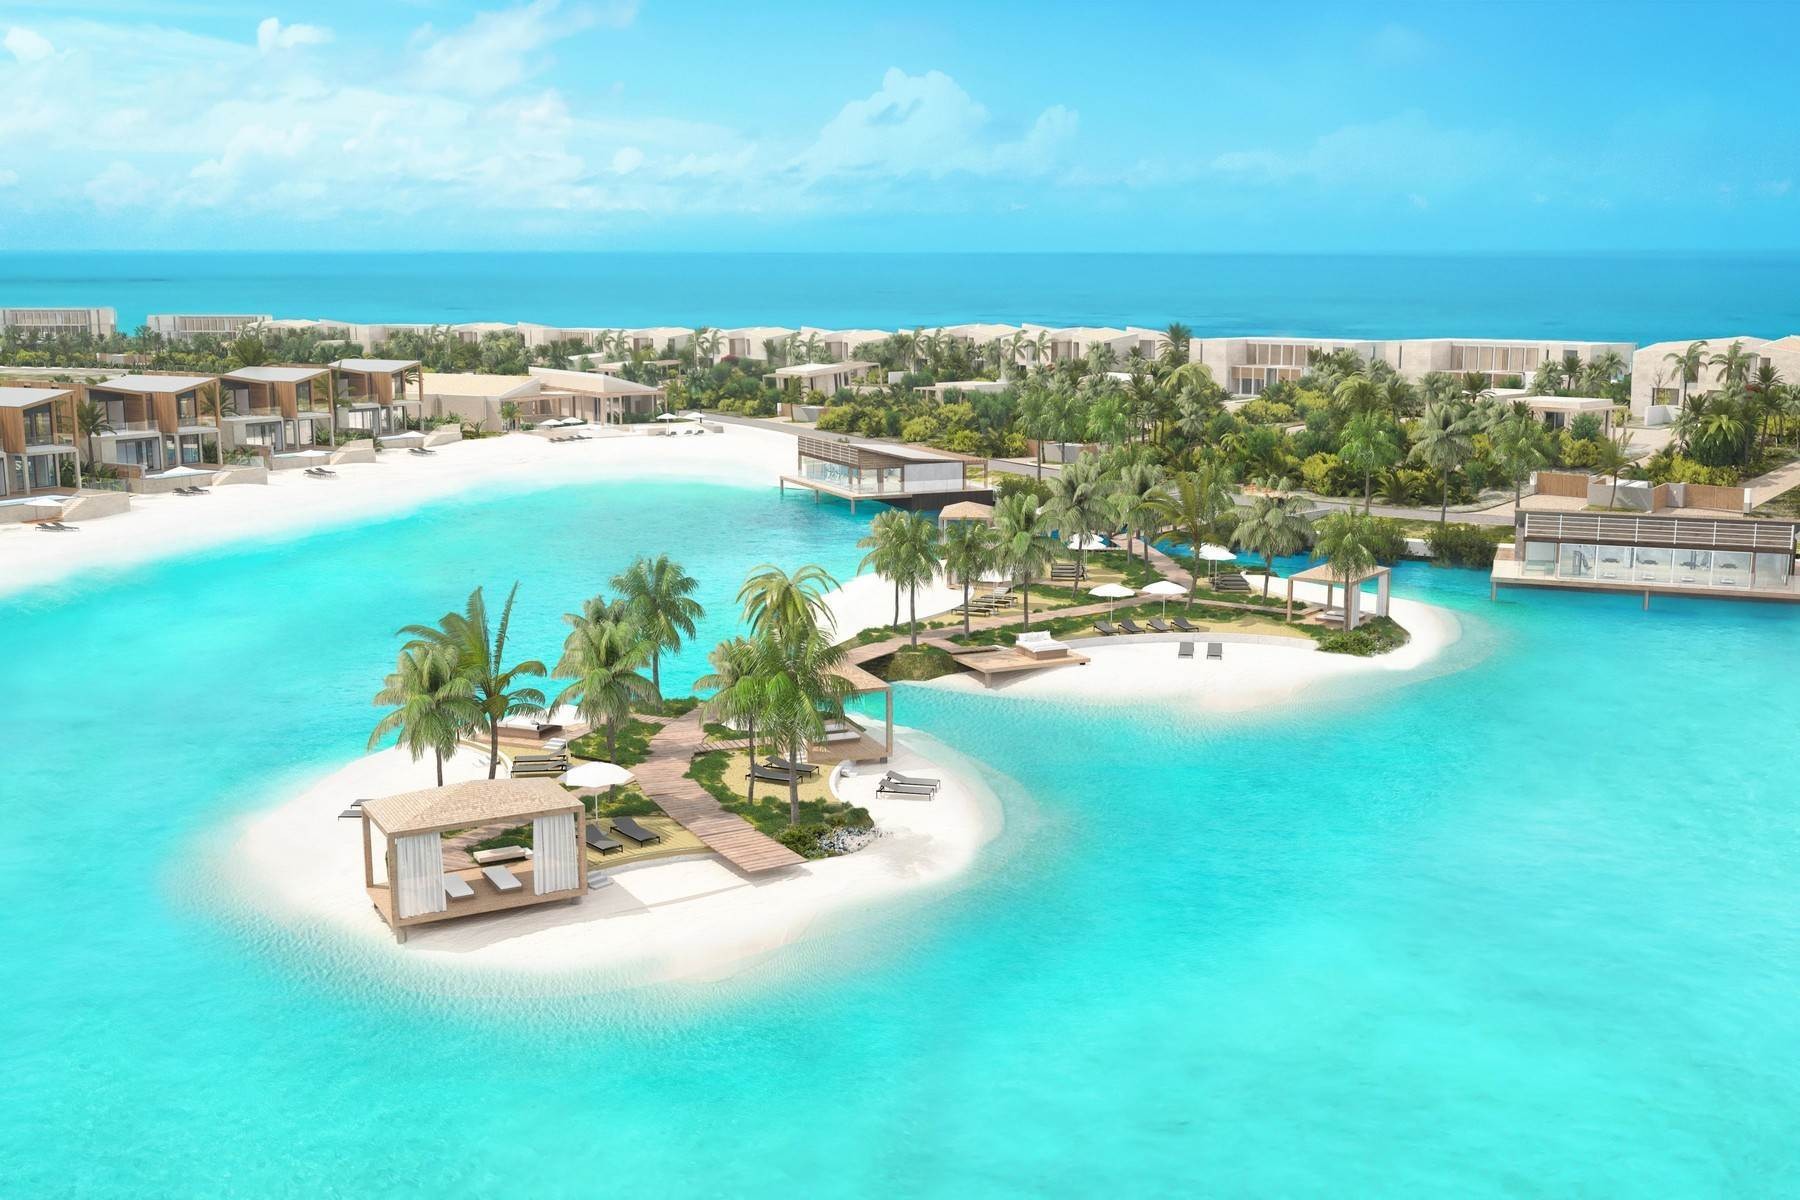 Single Family Homes for Sale at SOUTH BANK - THE LAGOON II - LAGOON VILLA 18 South Bank, Long Bay, Providenciales Turks And Caicos Islands